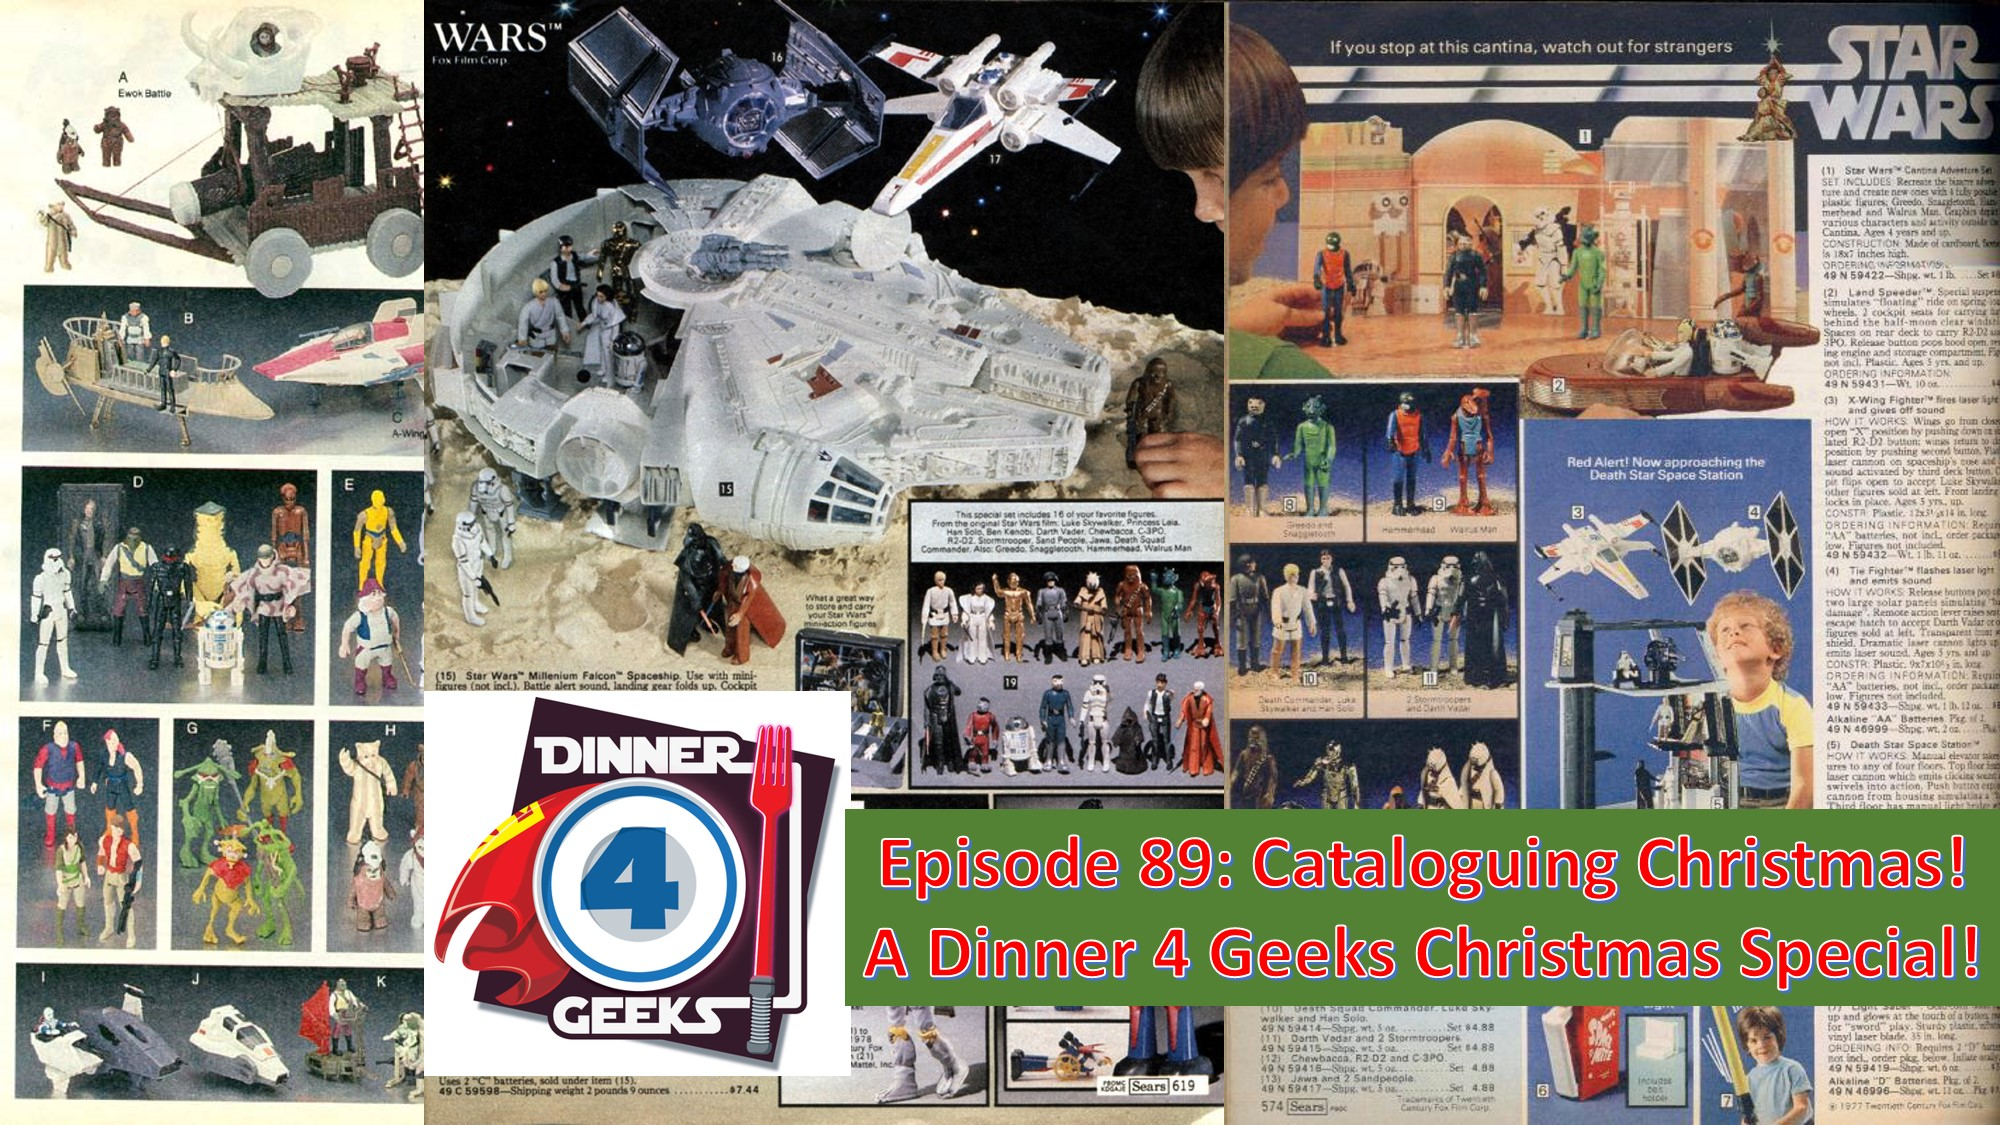 Episode 89: Cataloguing Christmas! A DInner 4 Geeks Christmas Special!